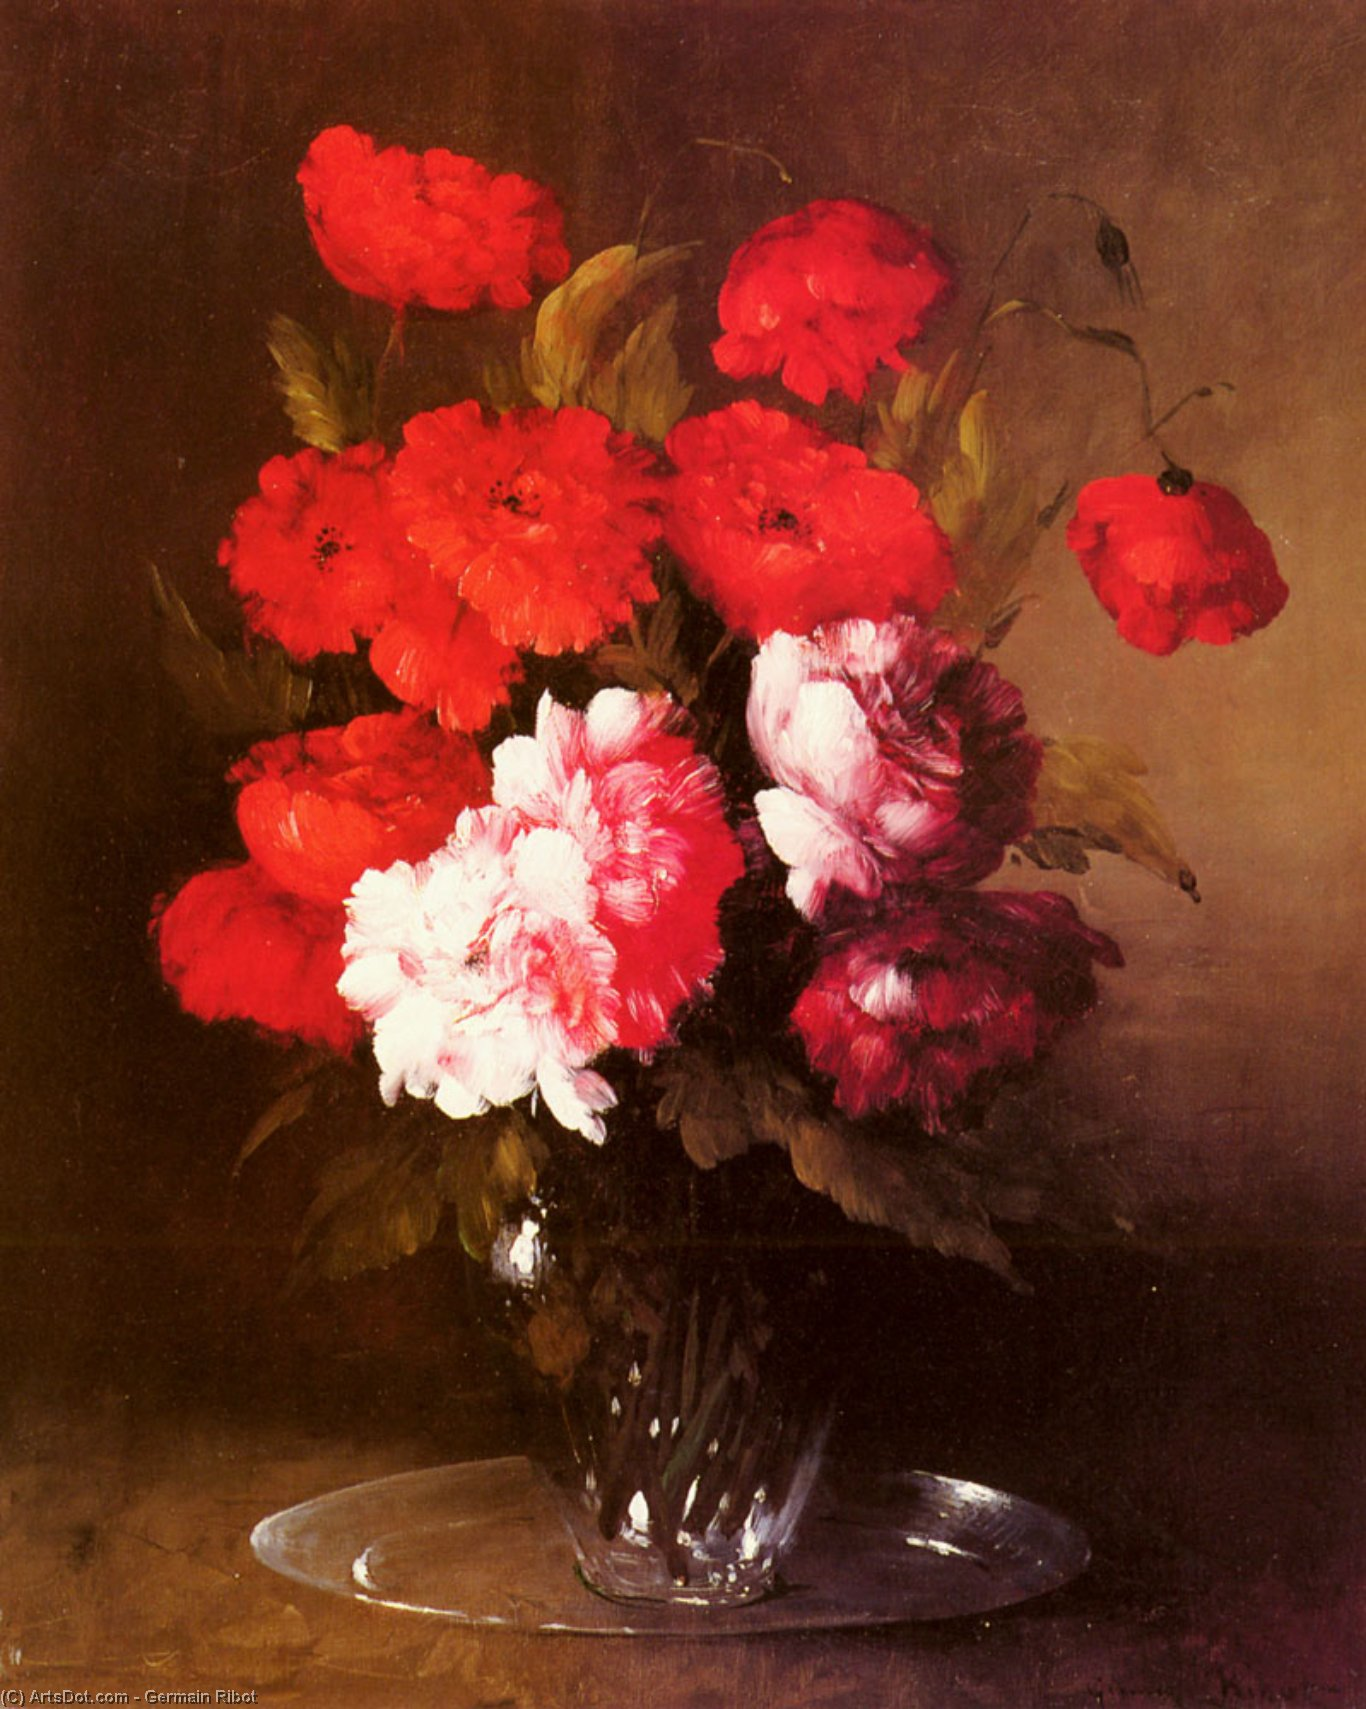 Pink Peonies and Poppies in a Glass Vase by Germain Ribot | Art Reproduction | ArtsDot.com